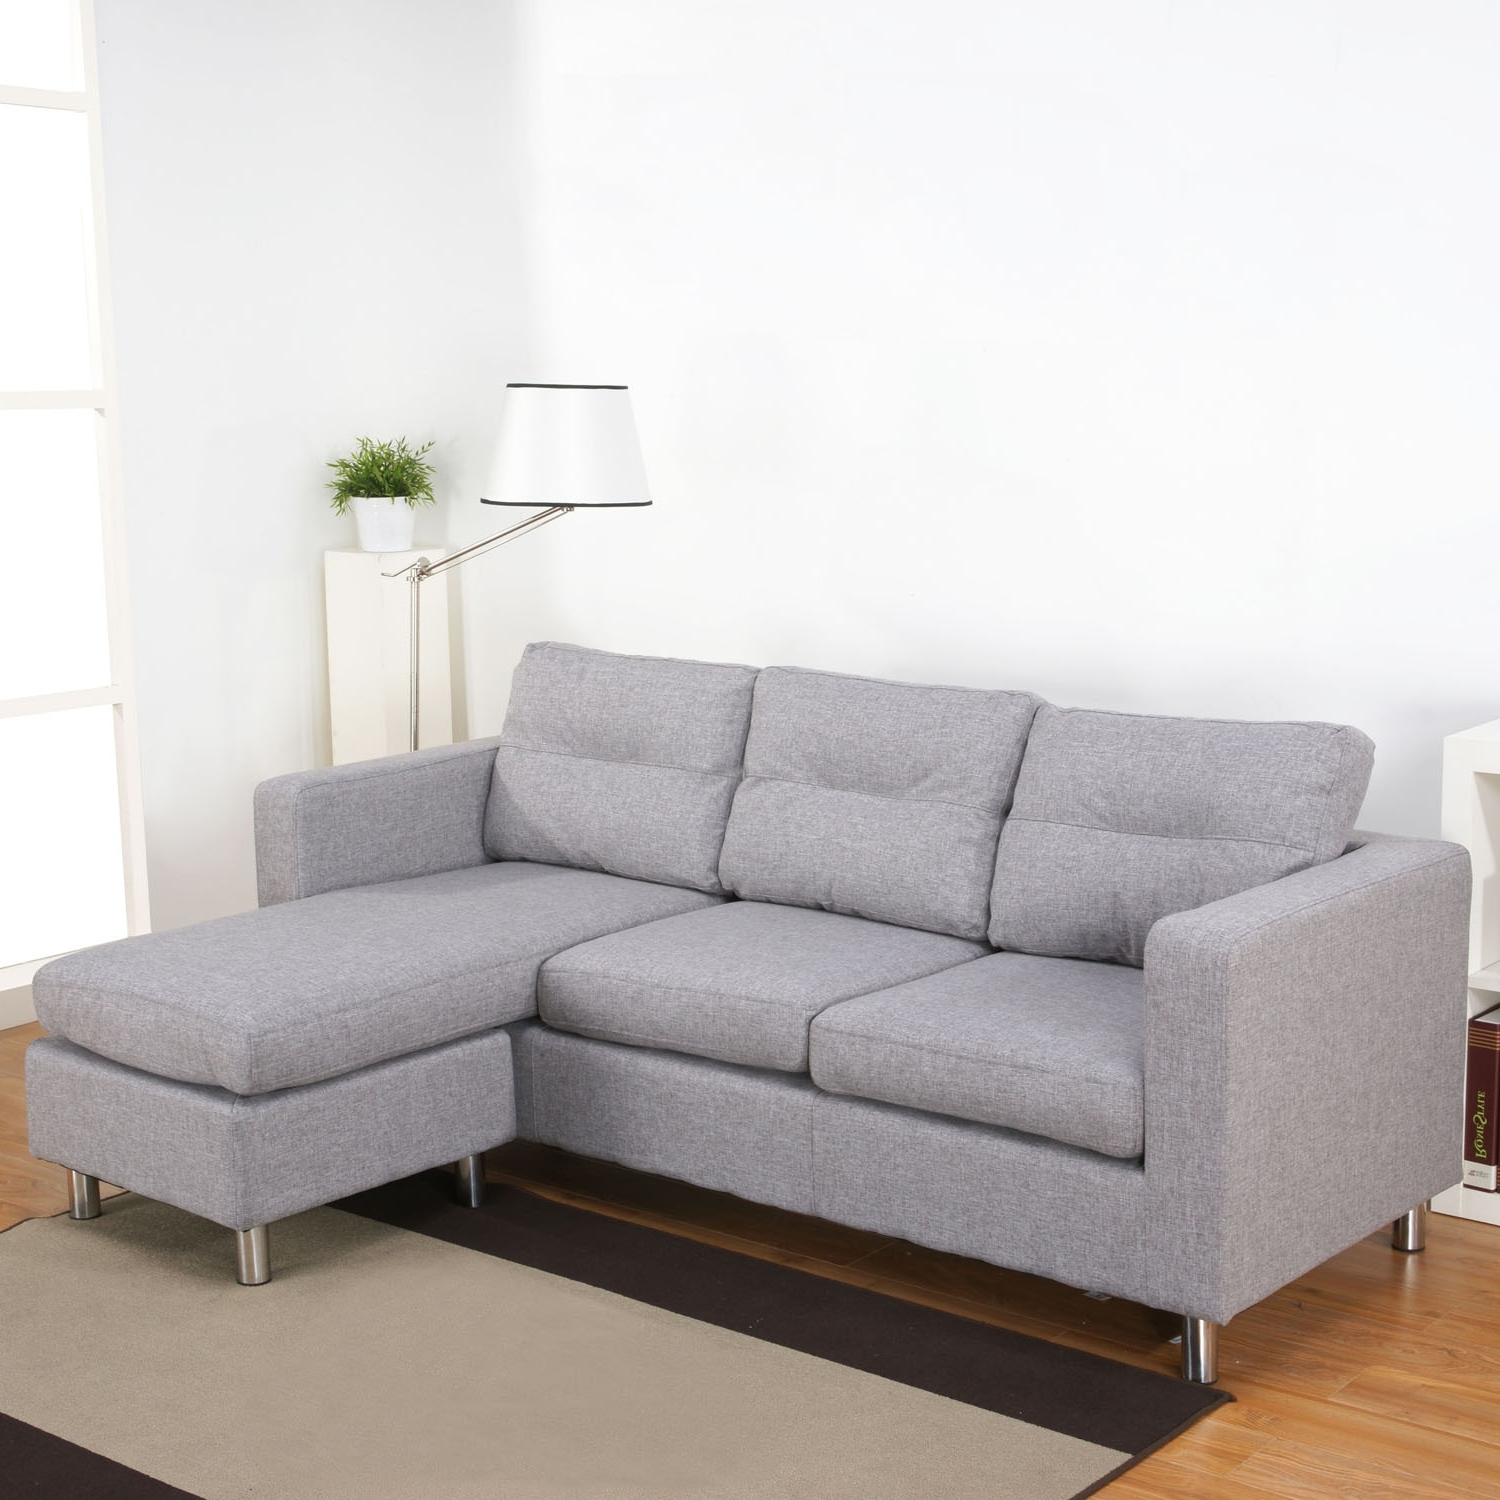 Gray Sectionals With Chaise Pertaining To Well Known Gray Sectional Sofas With Chaise (View 8 of 15)